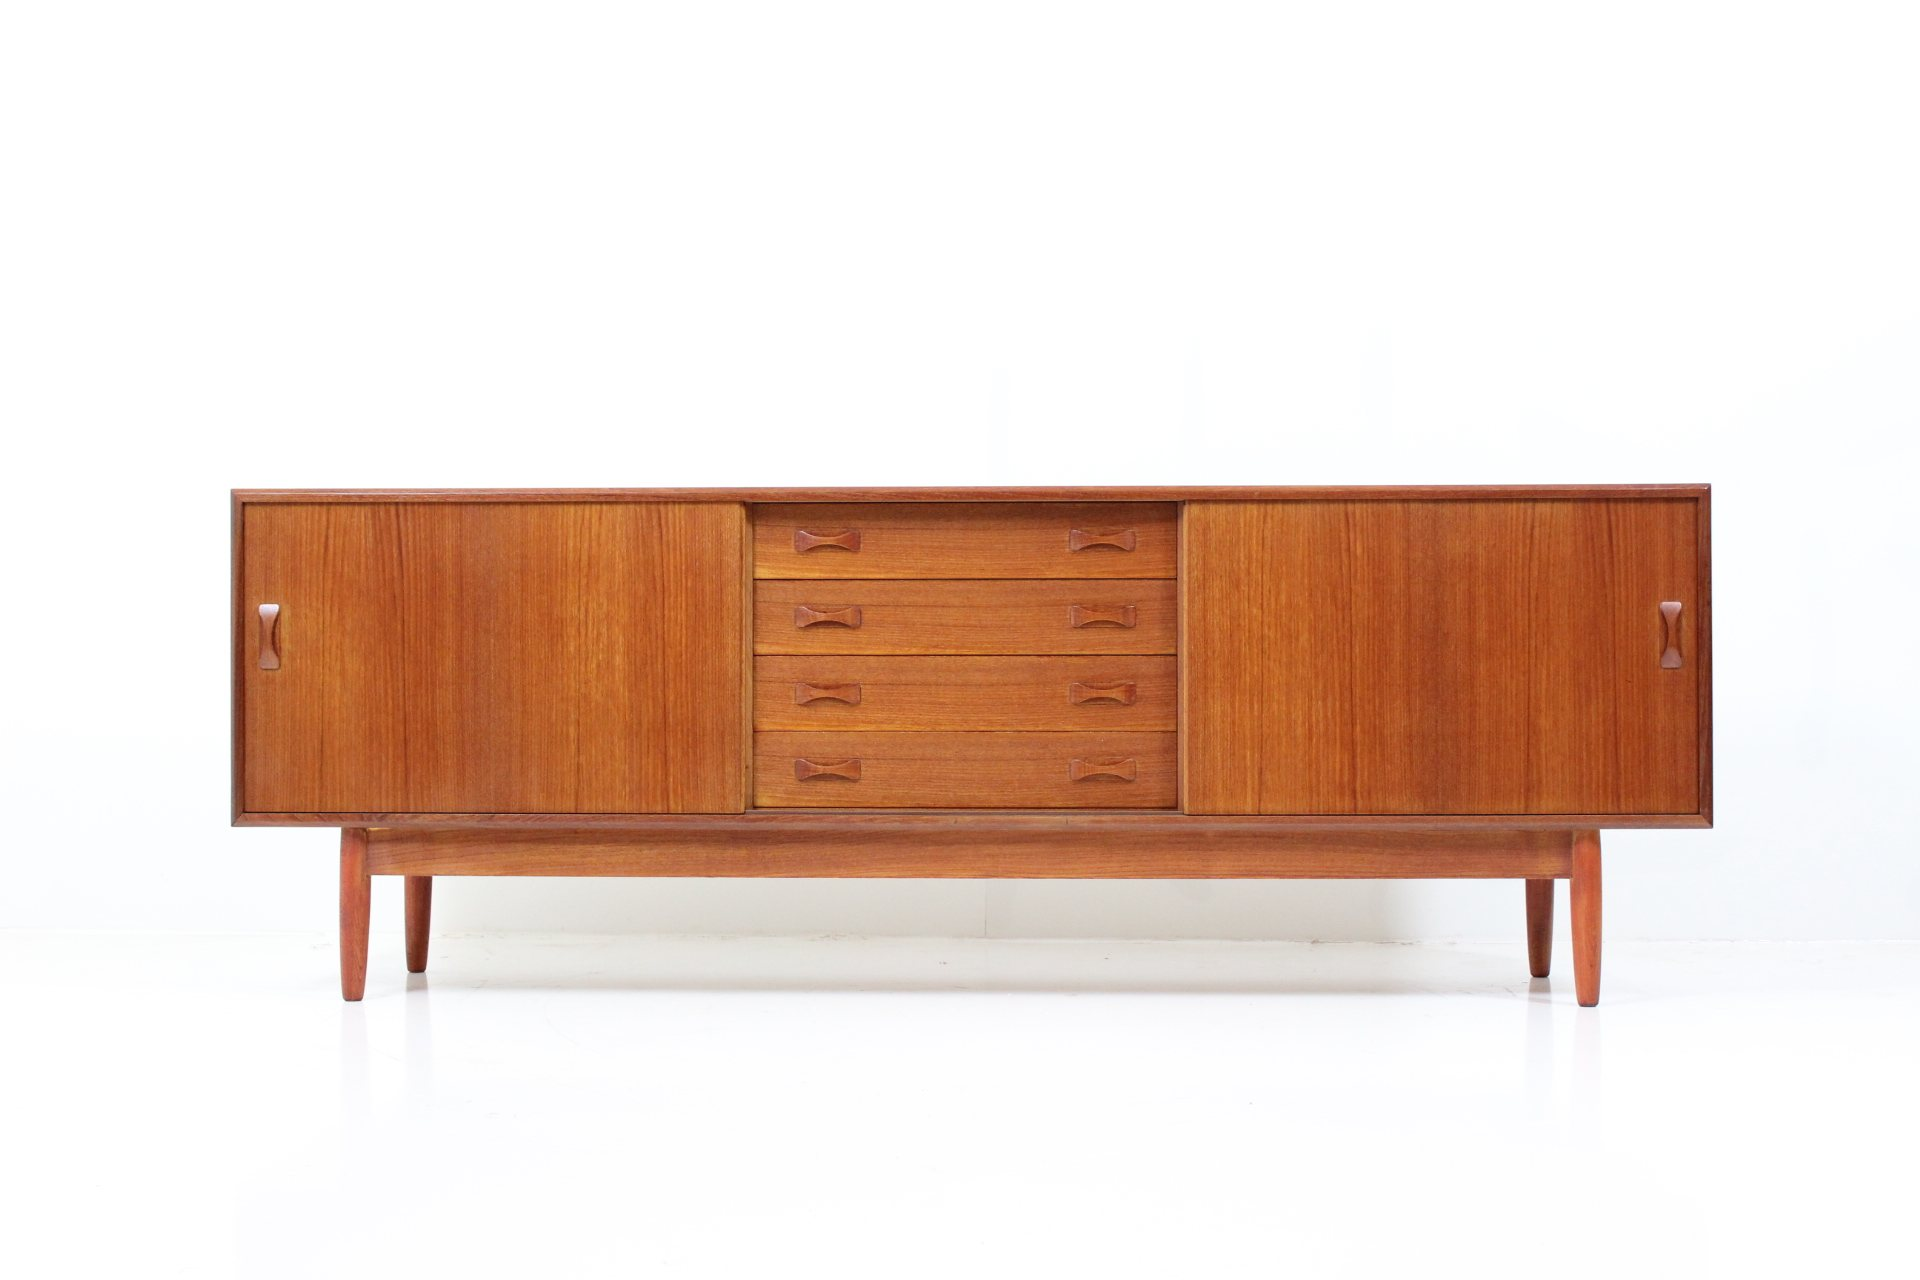 Vintage Sliding Door Sideboard by A. Clausen for Clausen & Søn Co.